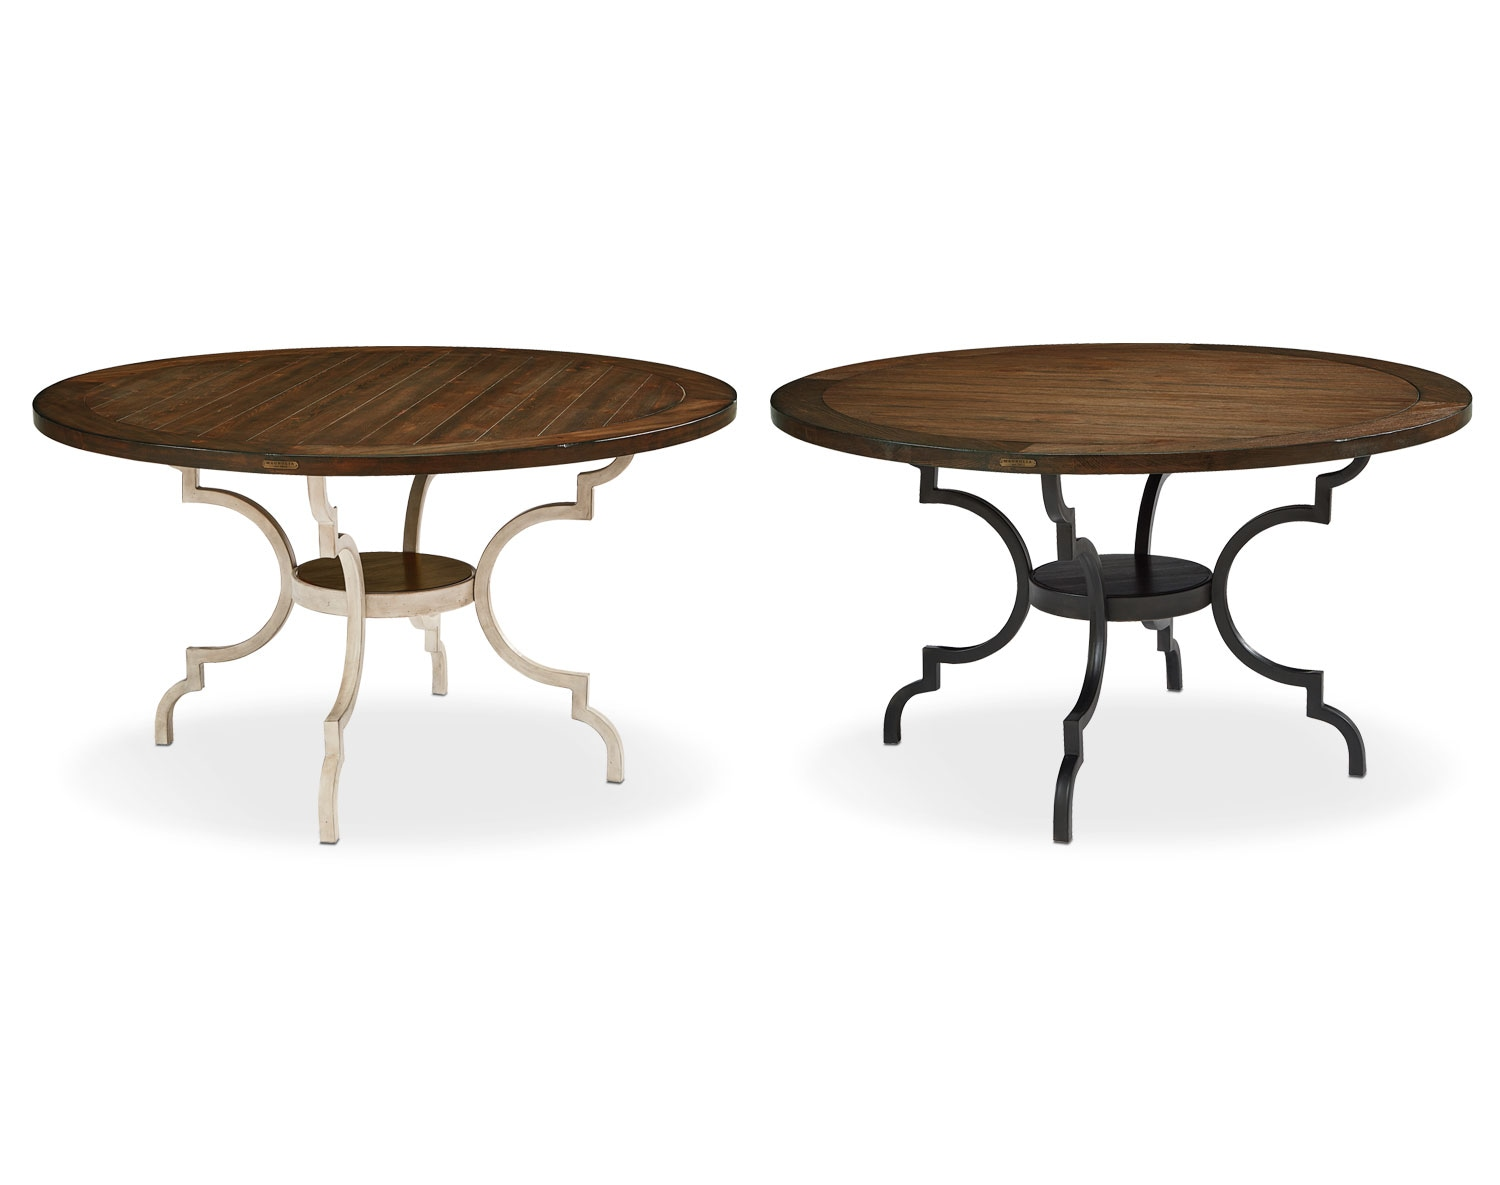 The French Inspired Breakfast Table Collection